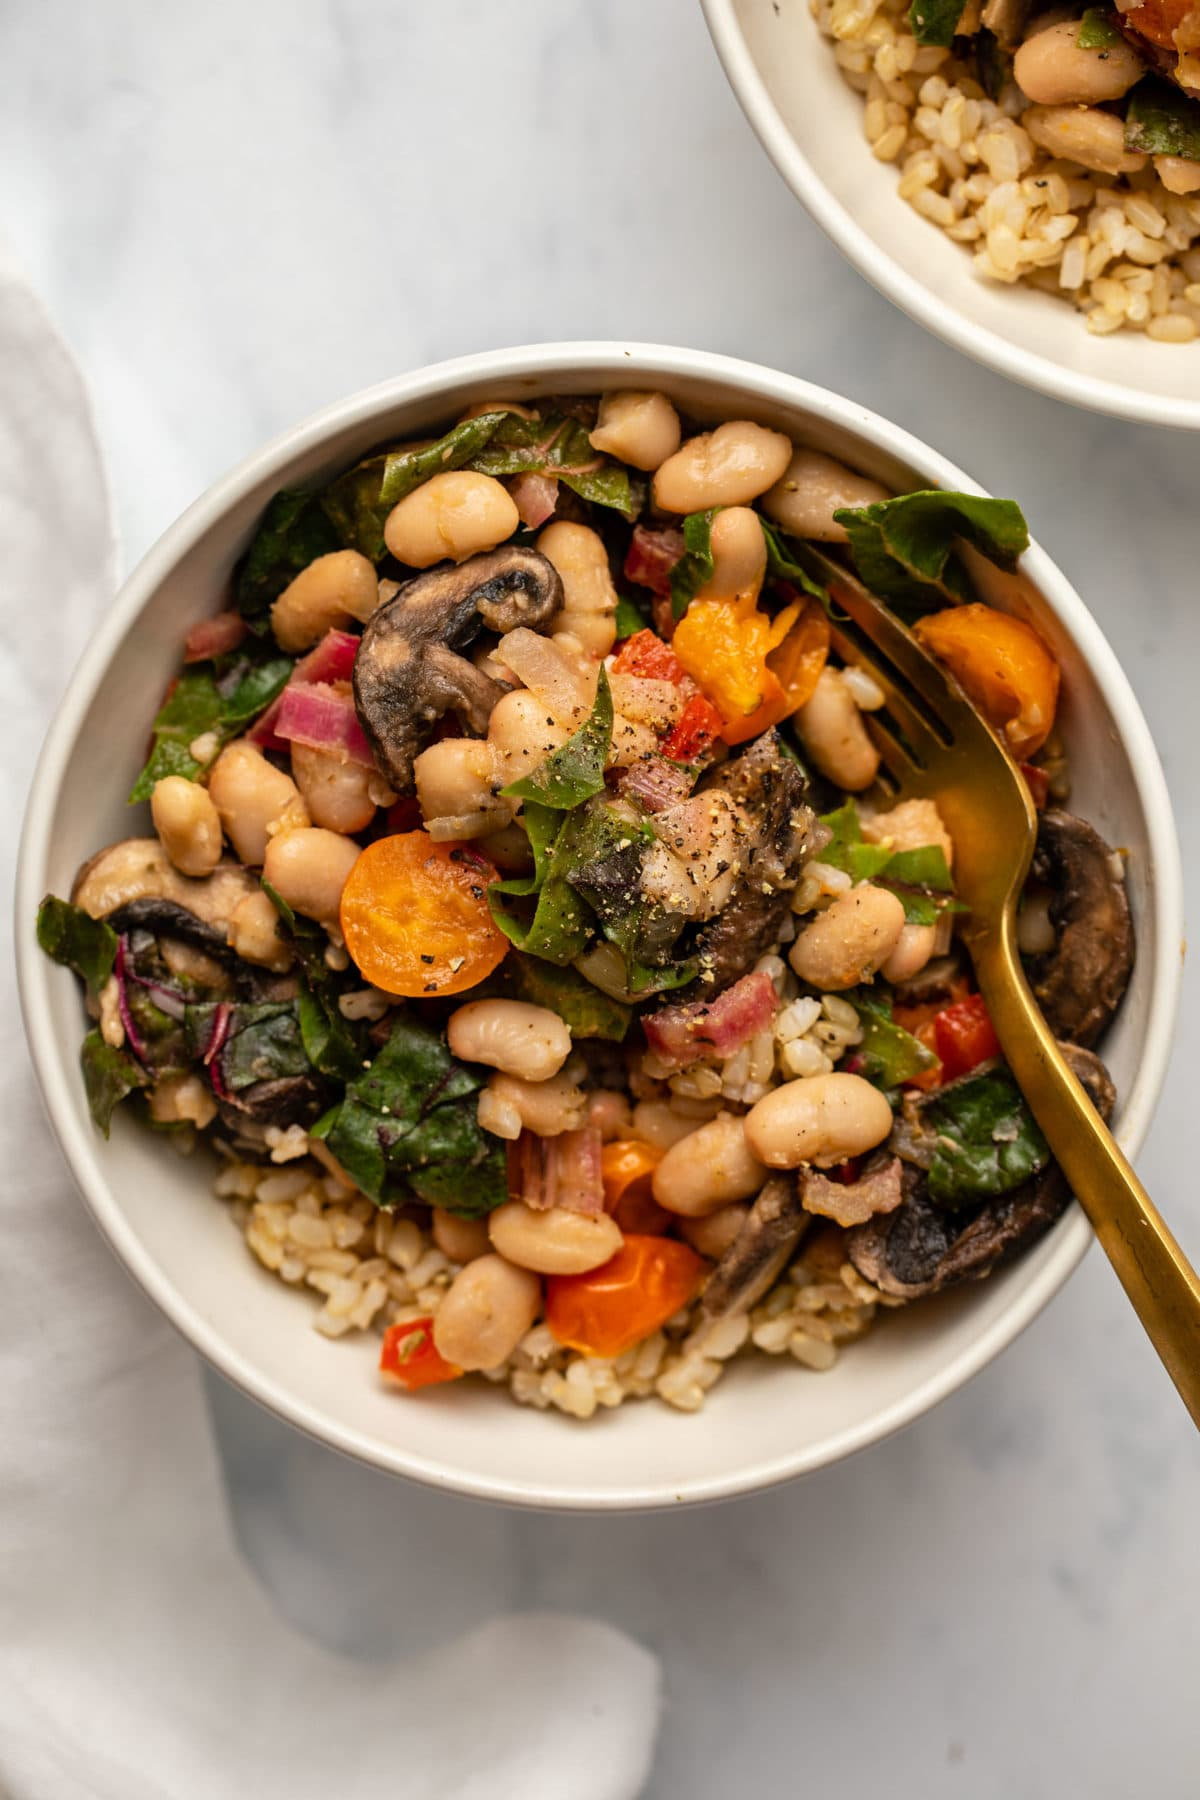 Summer white bean stir fry in white bowl with gold fork